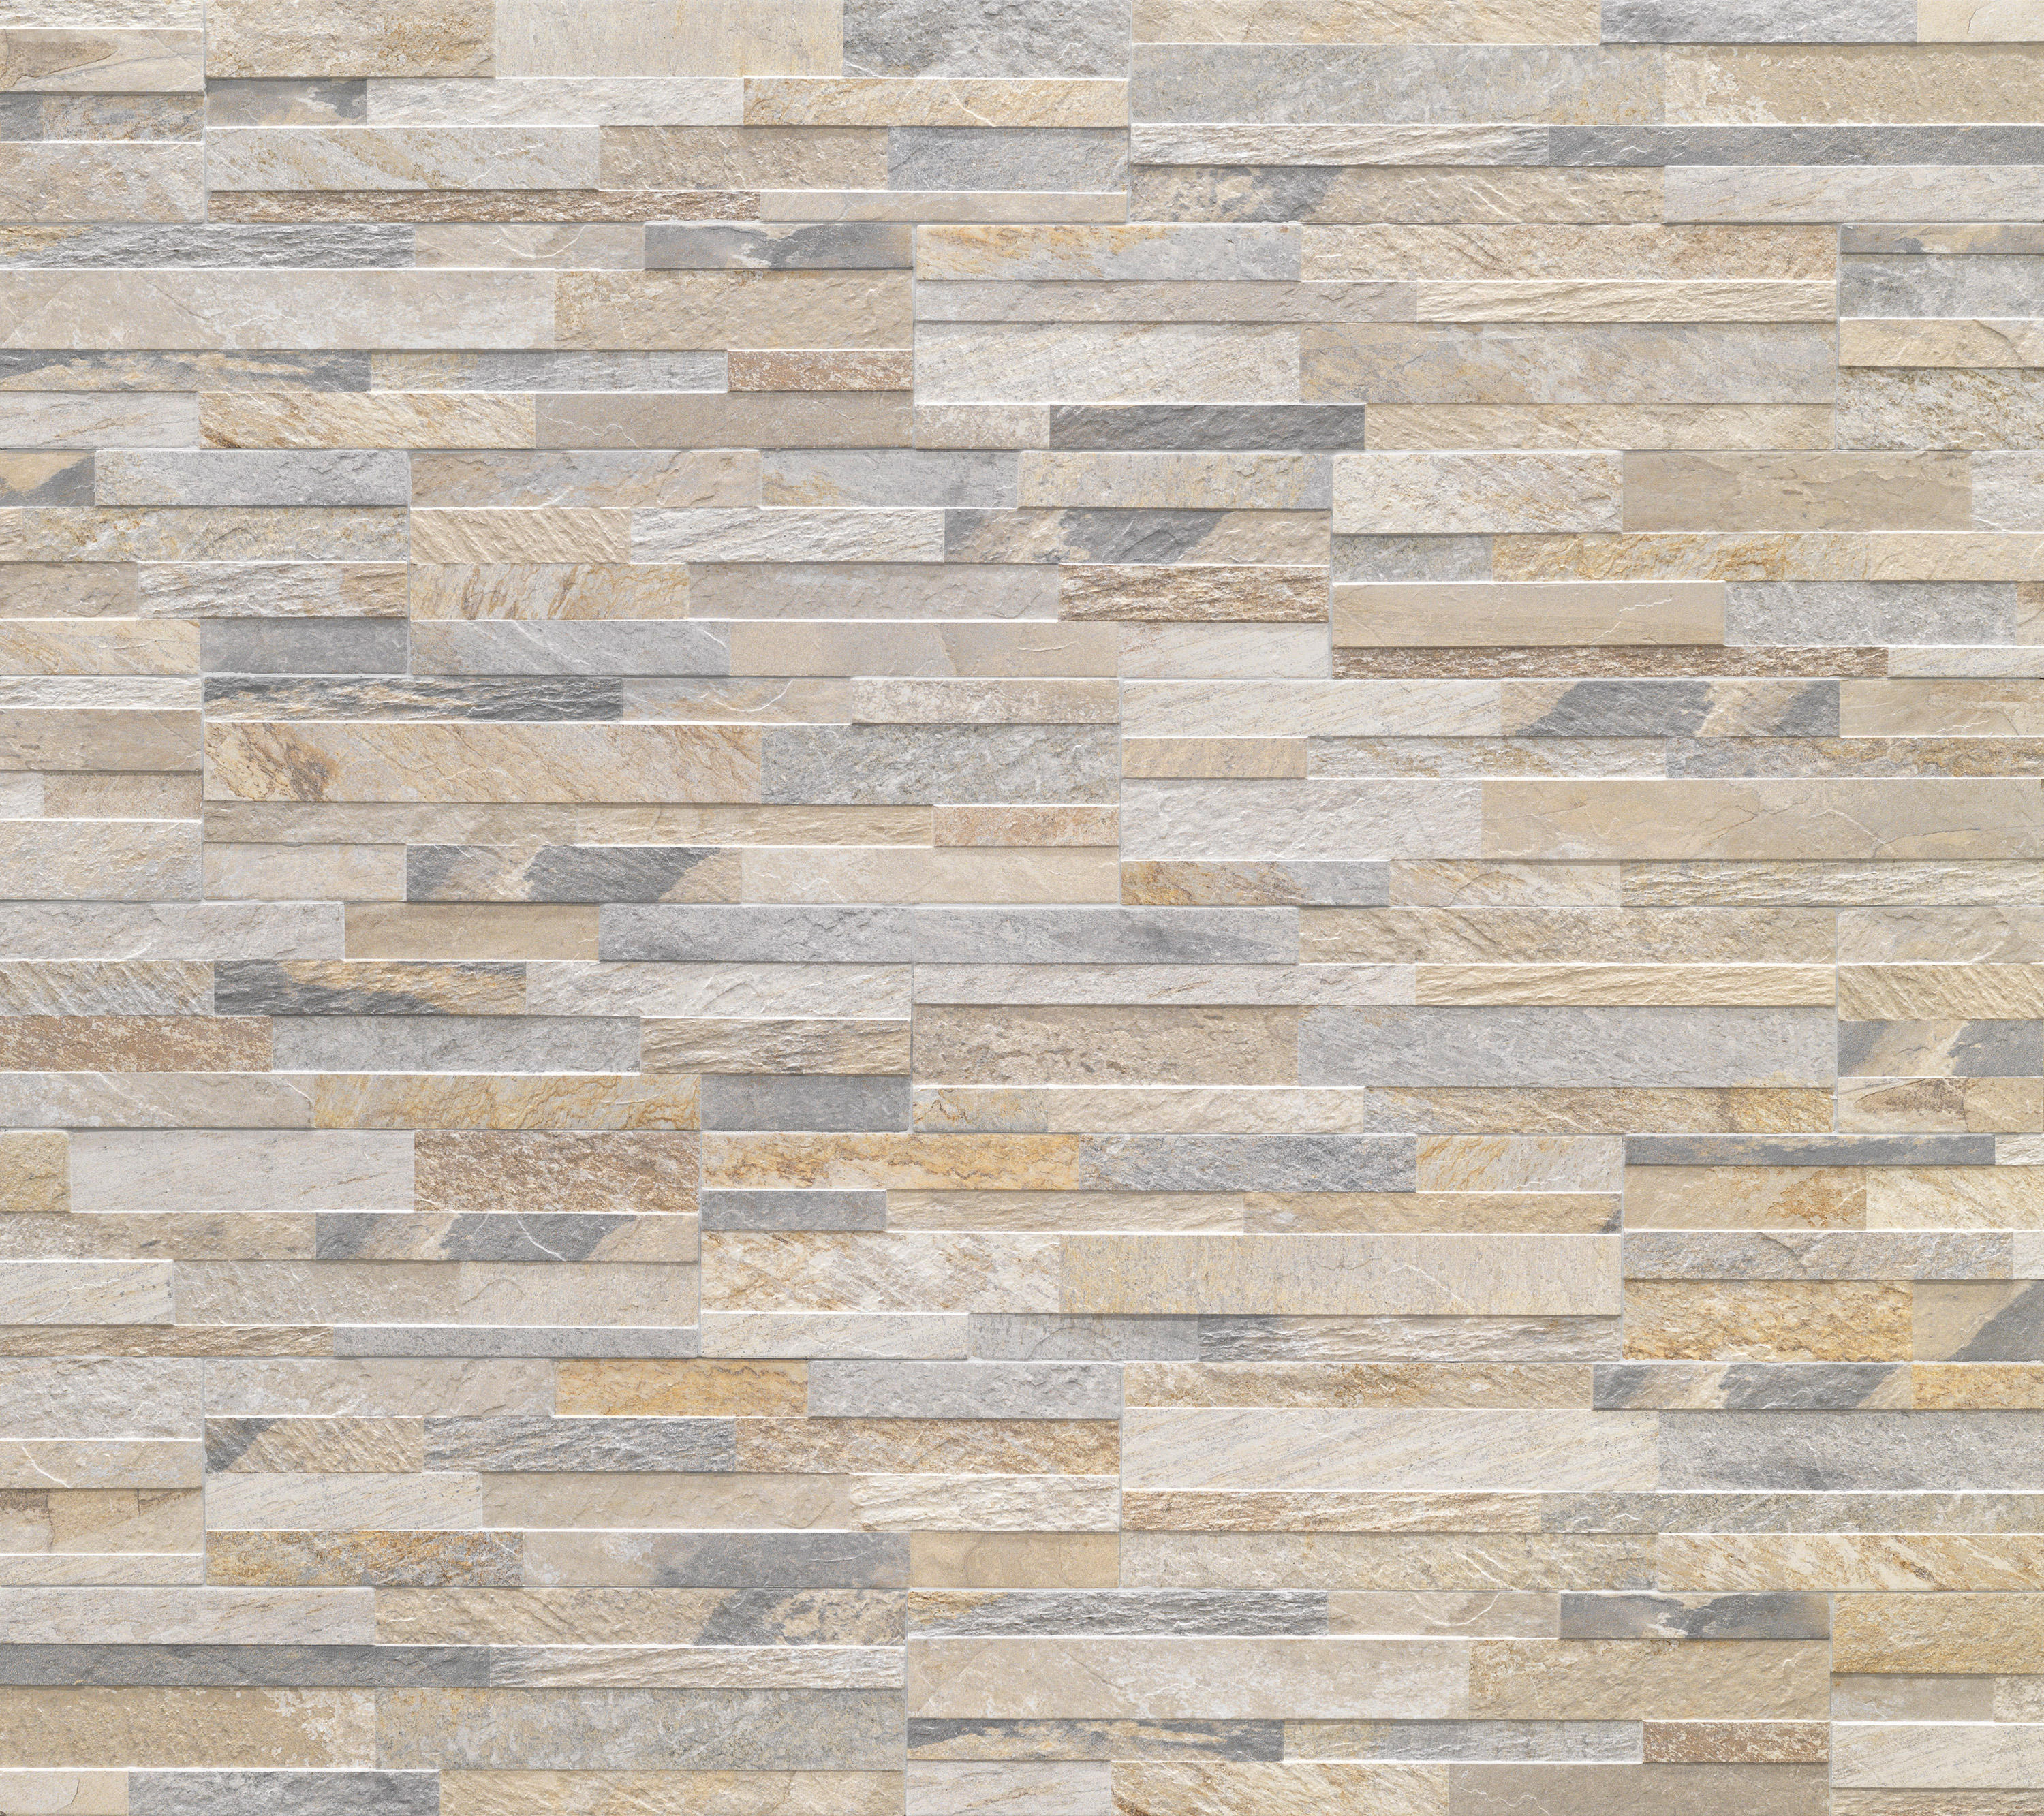 Cubics Beige Ceramic Tiles From